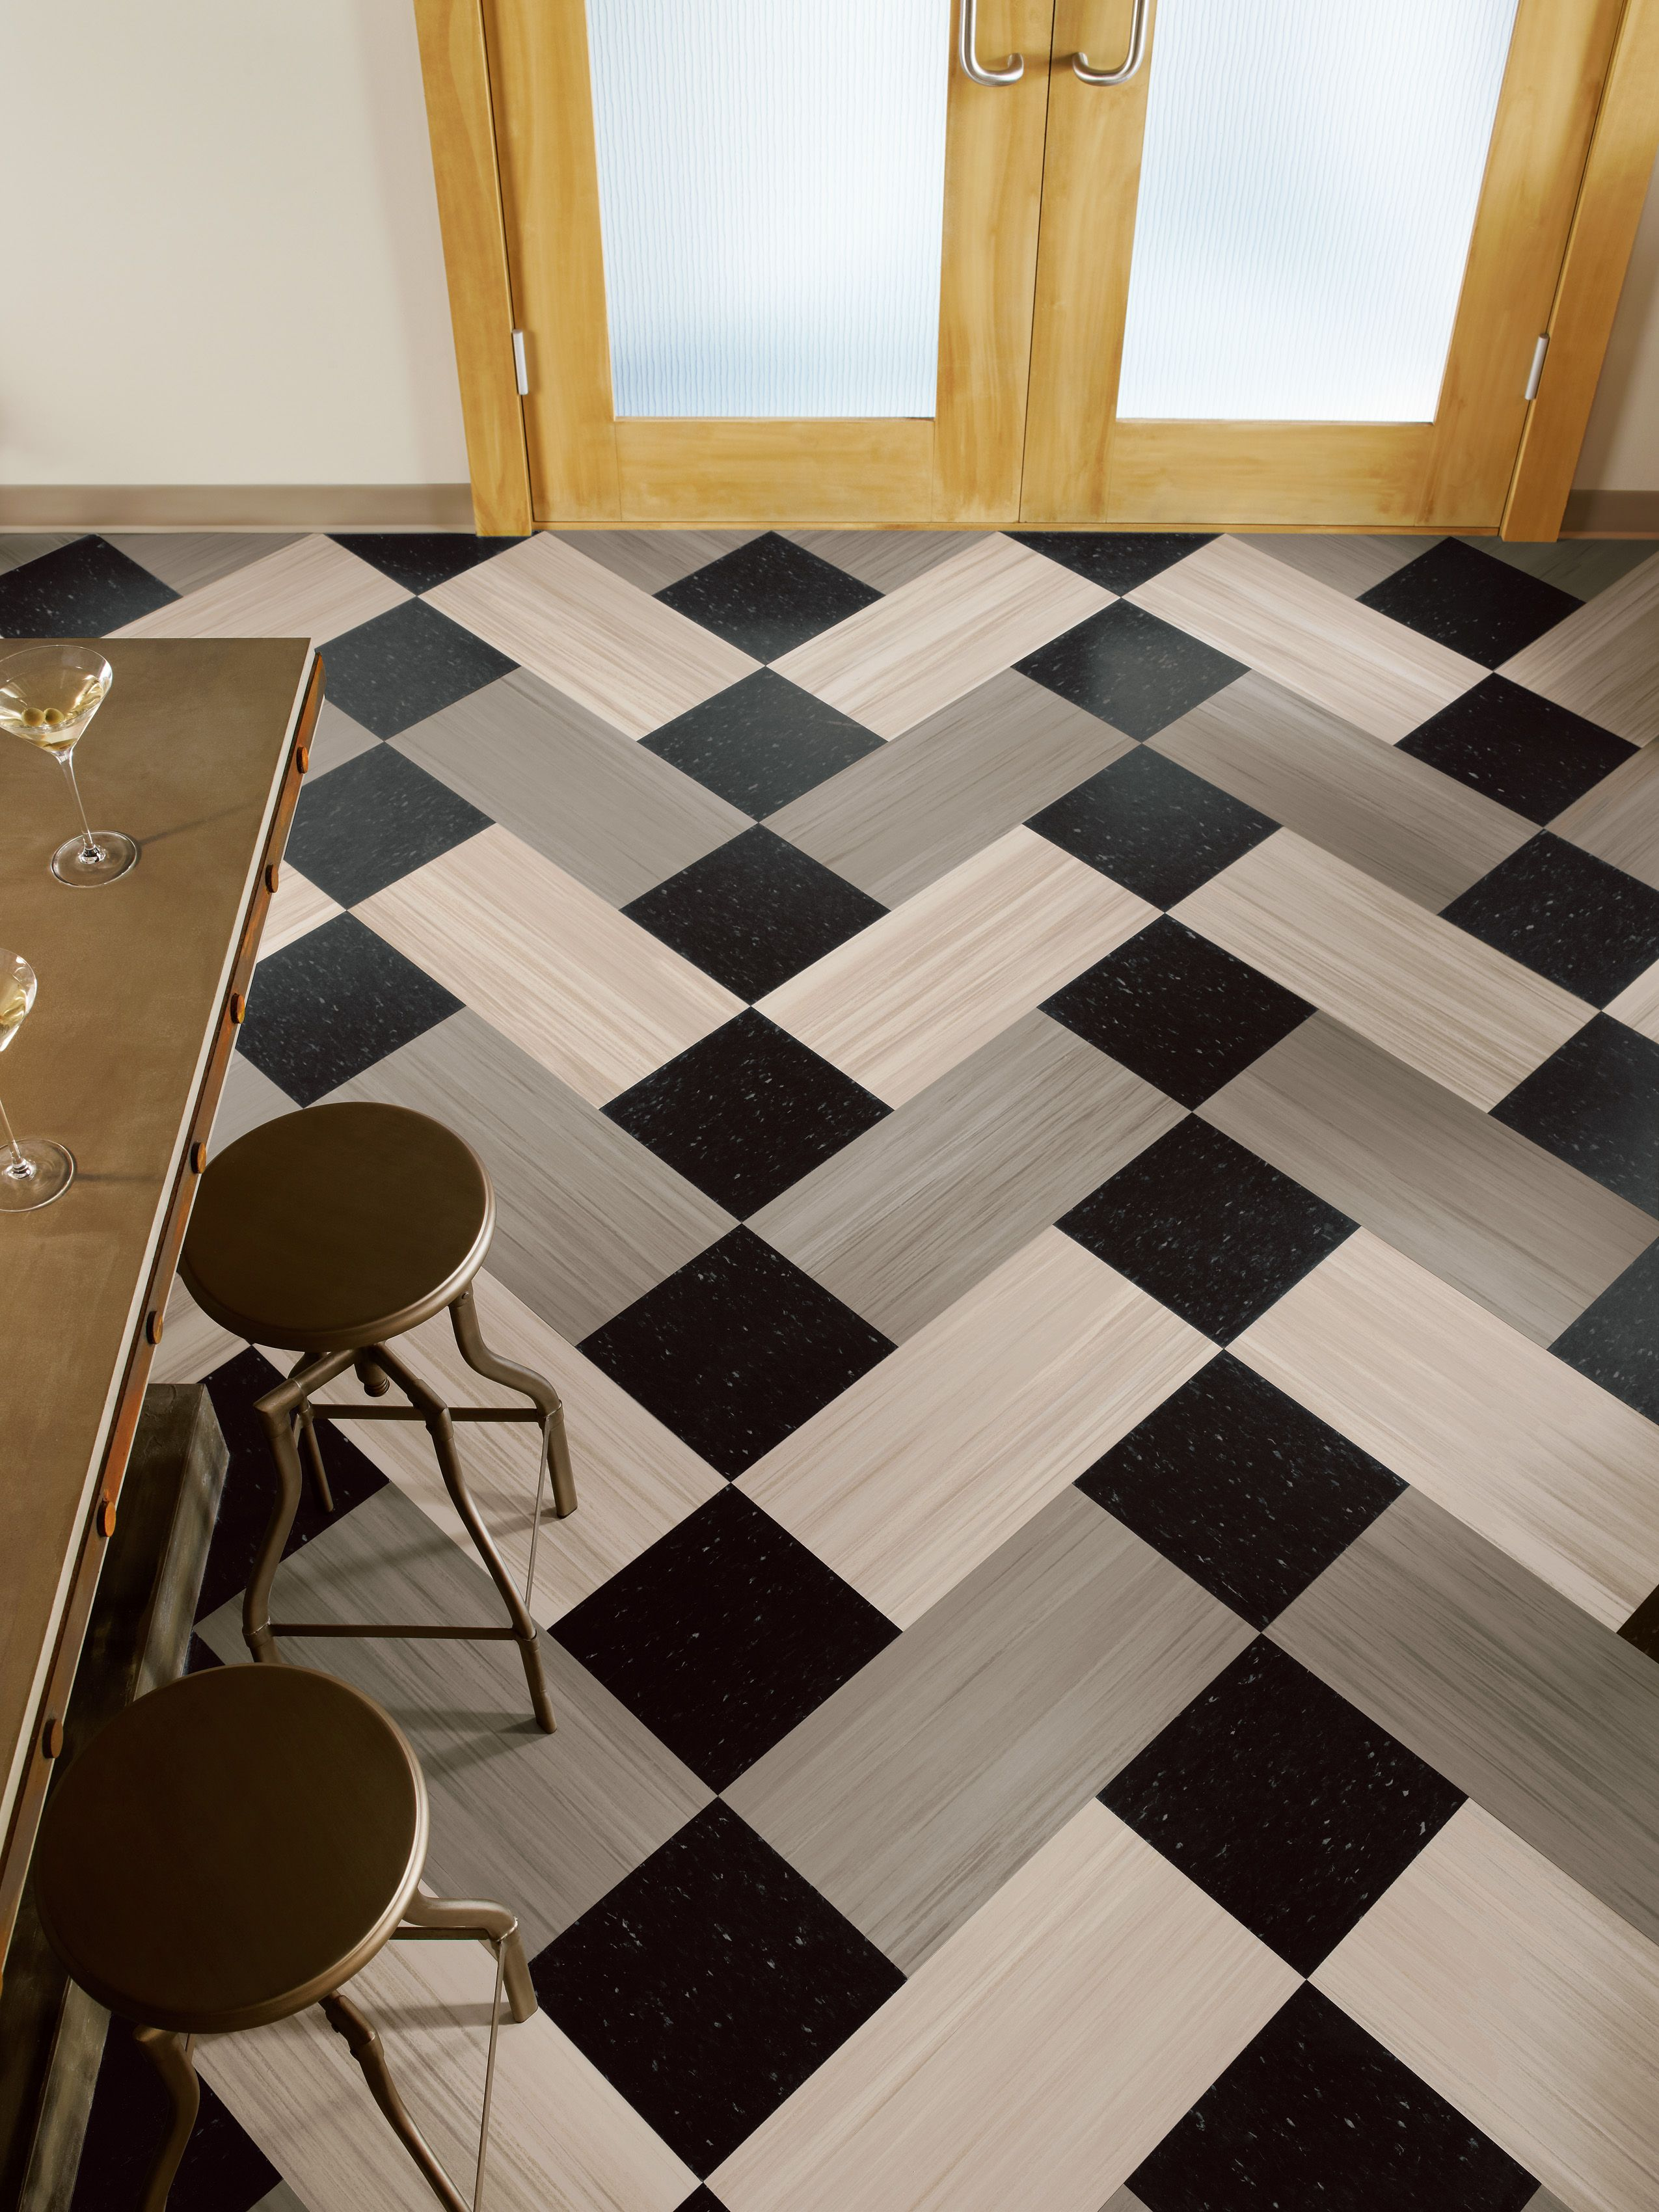 Armstrong Striations Is Bio Based Bbt Resilient Flooring In Planks And Square Tiles Russ Stavig Kitchen Flooring Patterned Floor Tiles Commercial Flooring